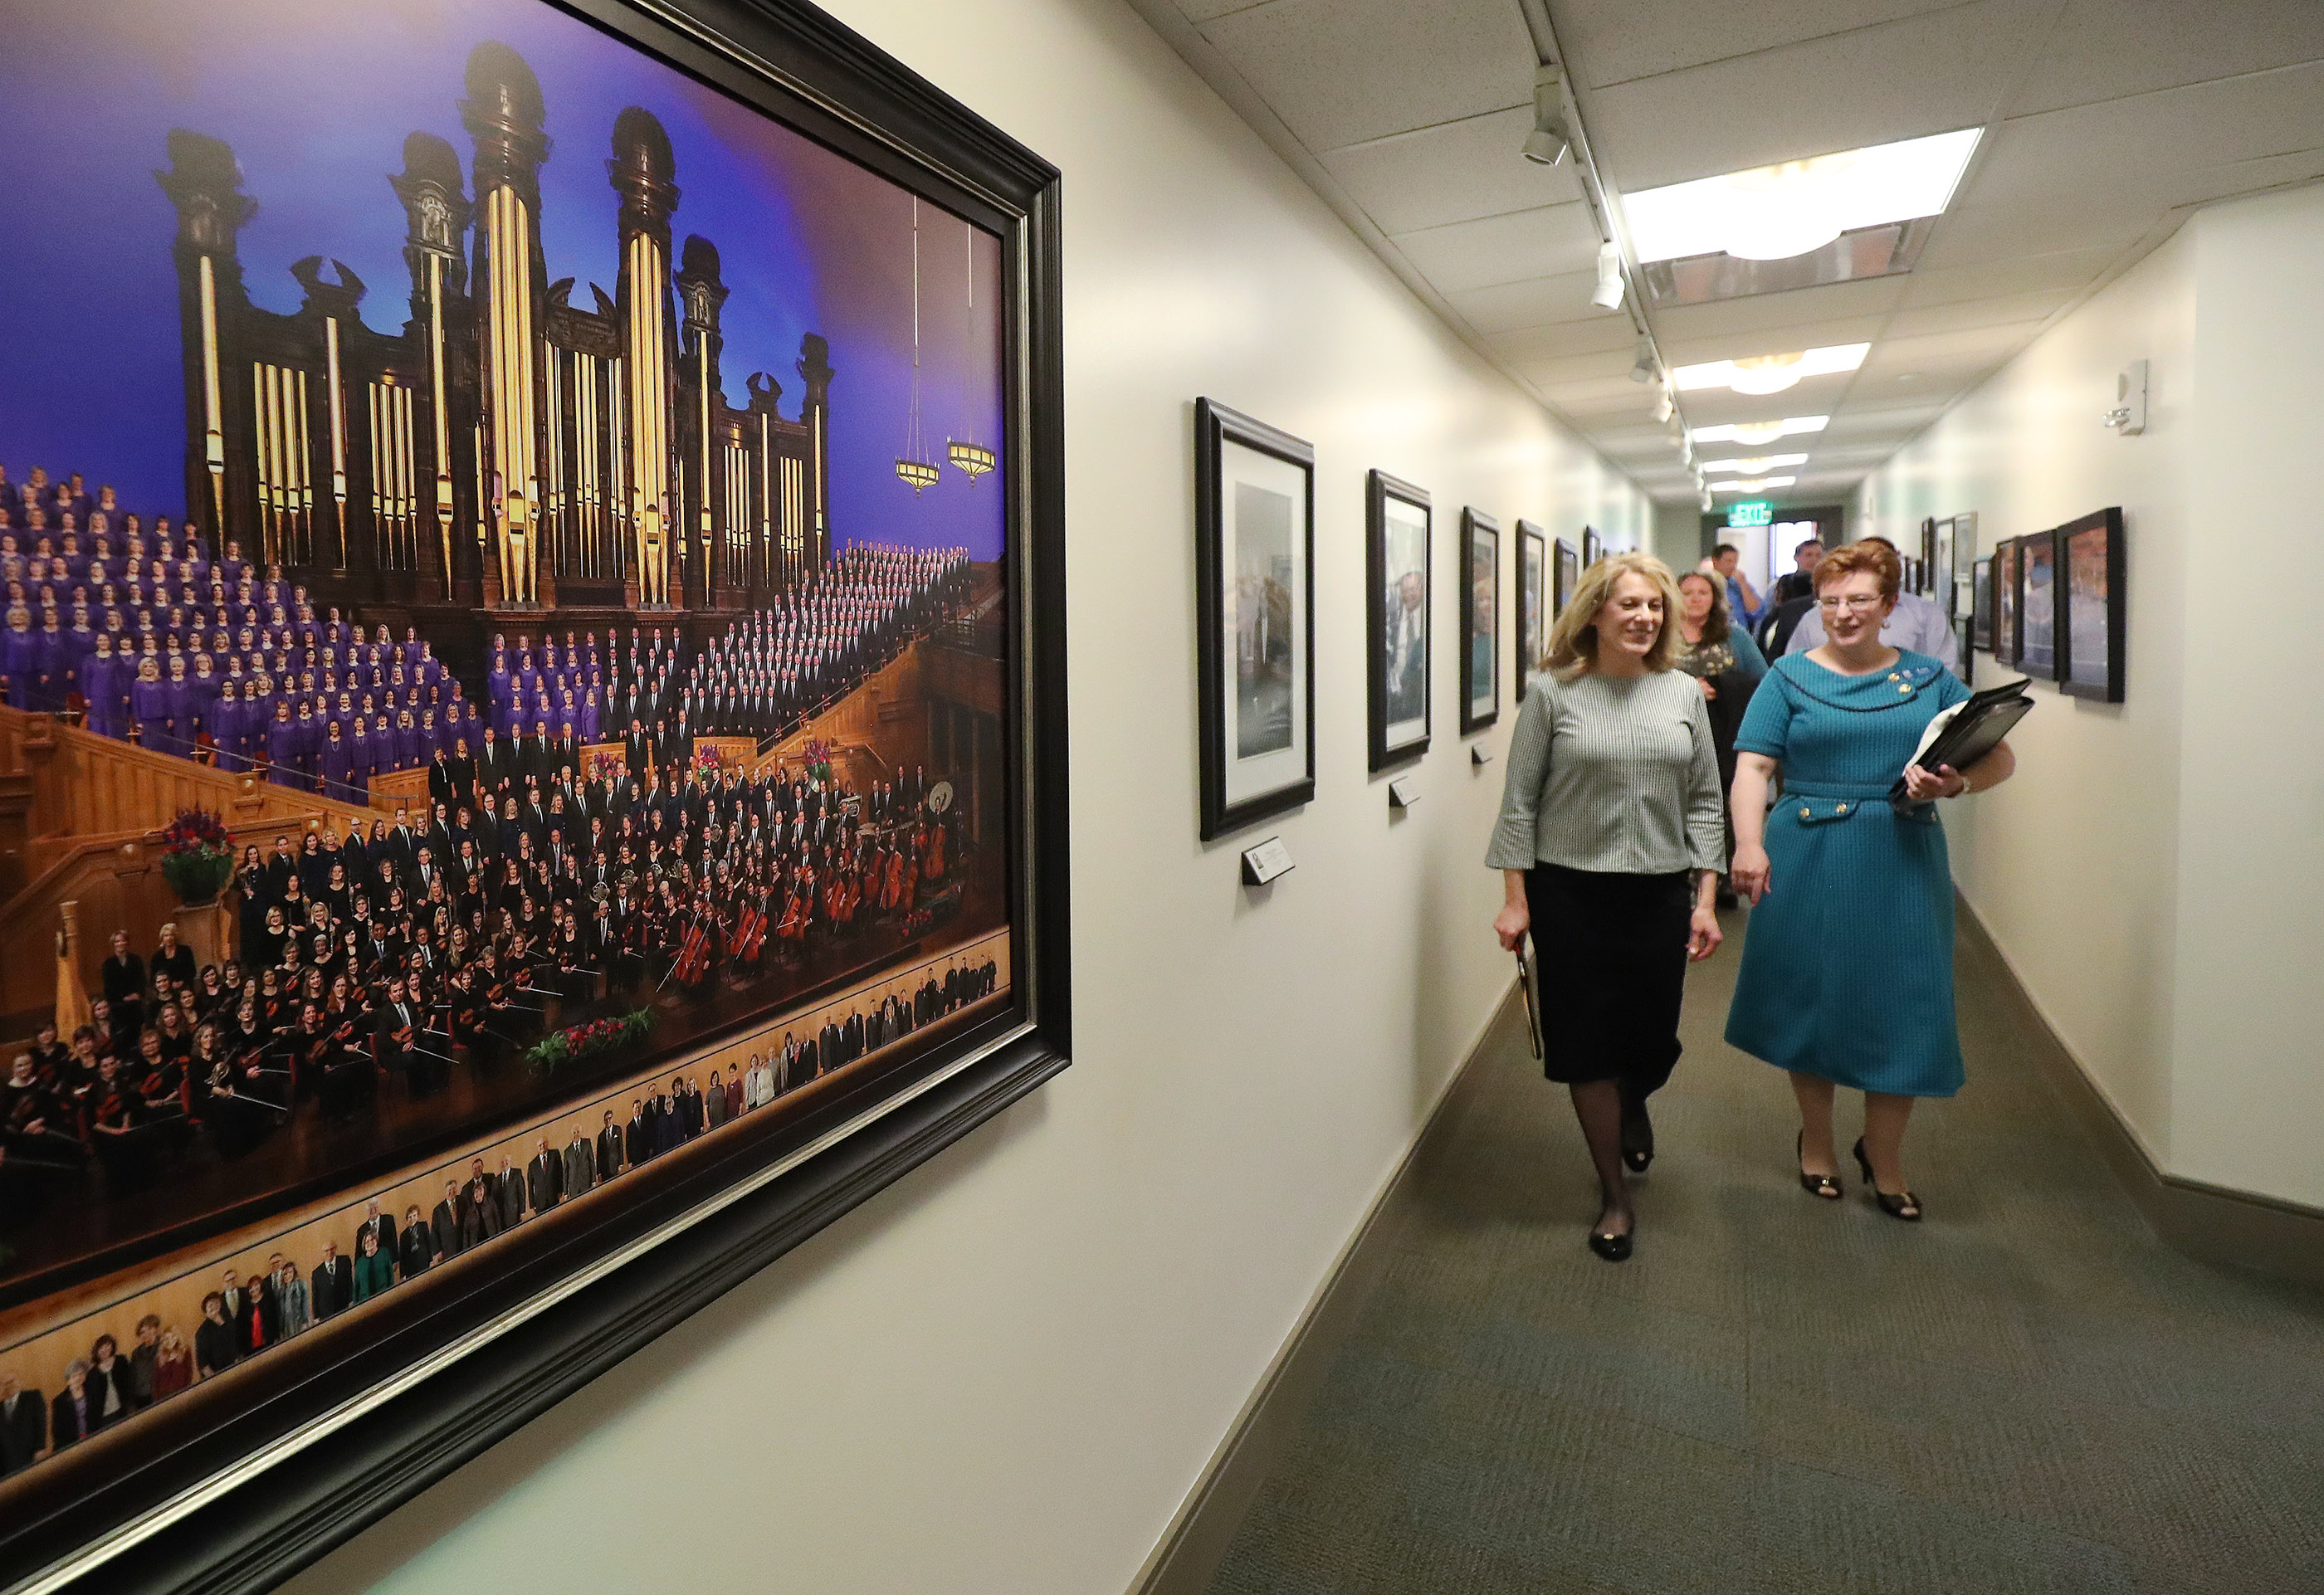 Debbie Matheson, left, is escorted by choir member Lori Hayward in preparation to sing with The Tabernacle Choir at Temple Square during a rehearsal in Salt Lake City on Thursday, April 11, 2019. Four people were selected through social media to sing with the choir.